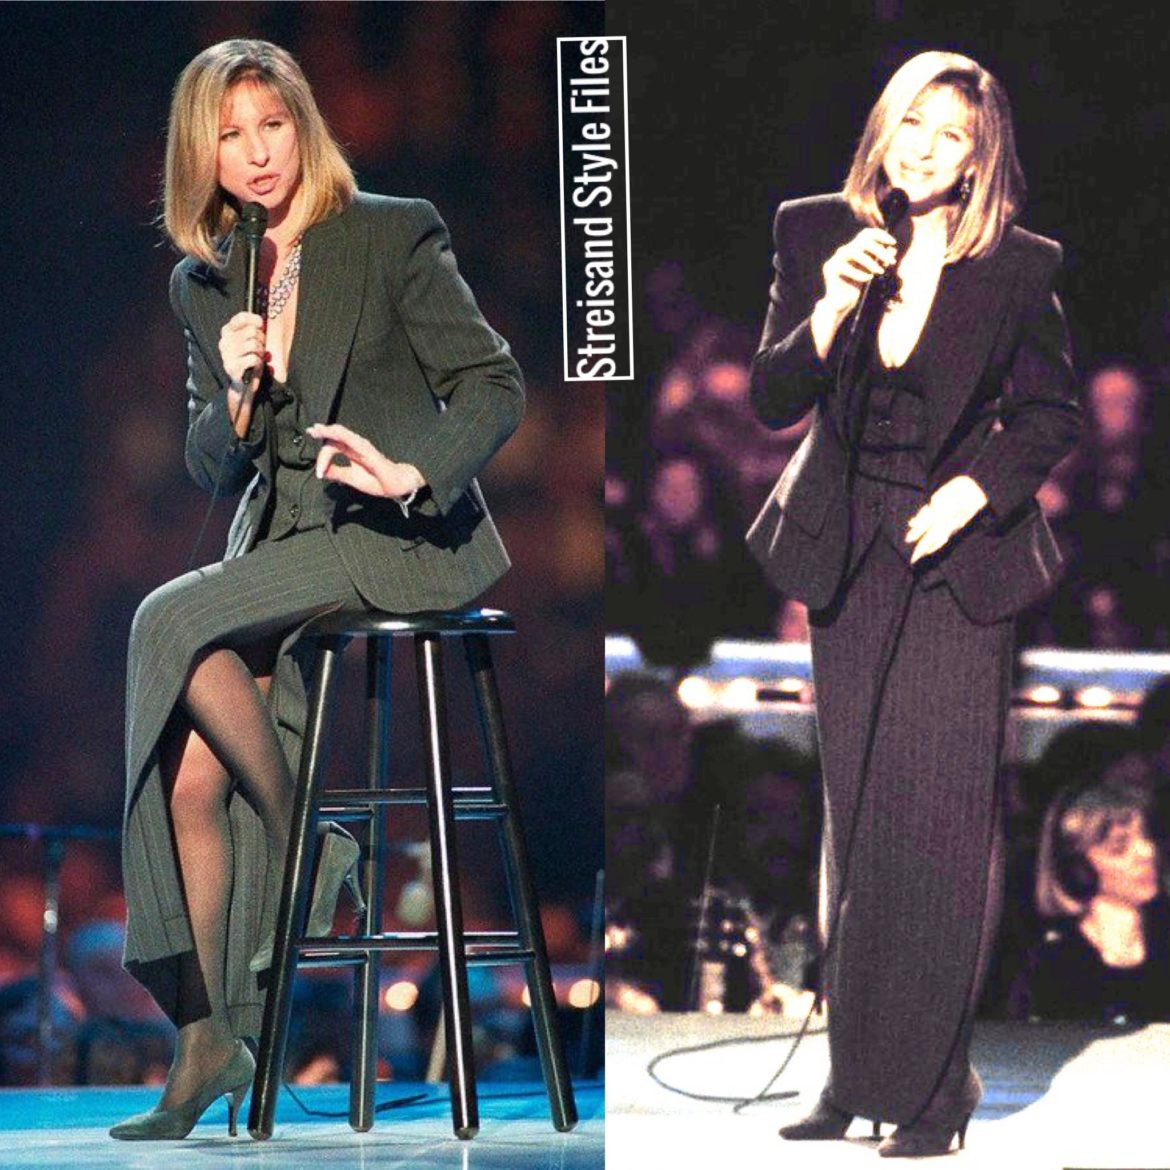 """She was all man and all women."" Performing at Bill Clinton's 1993 Inaugural Gala in a pin-striped, three piece skirt suit"